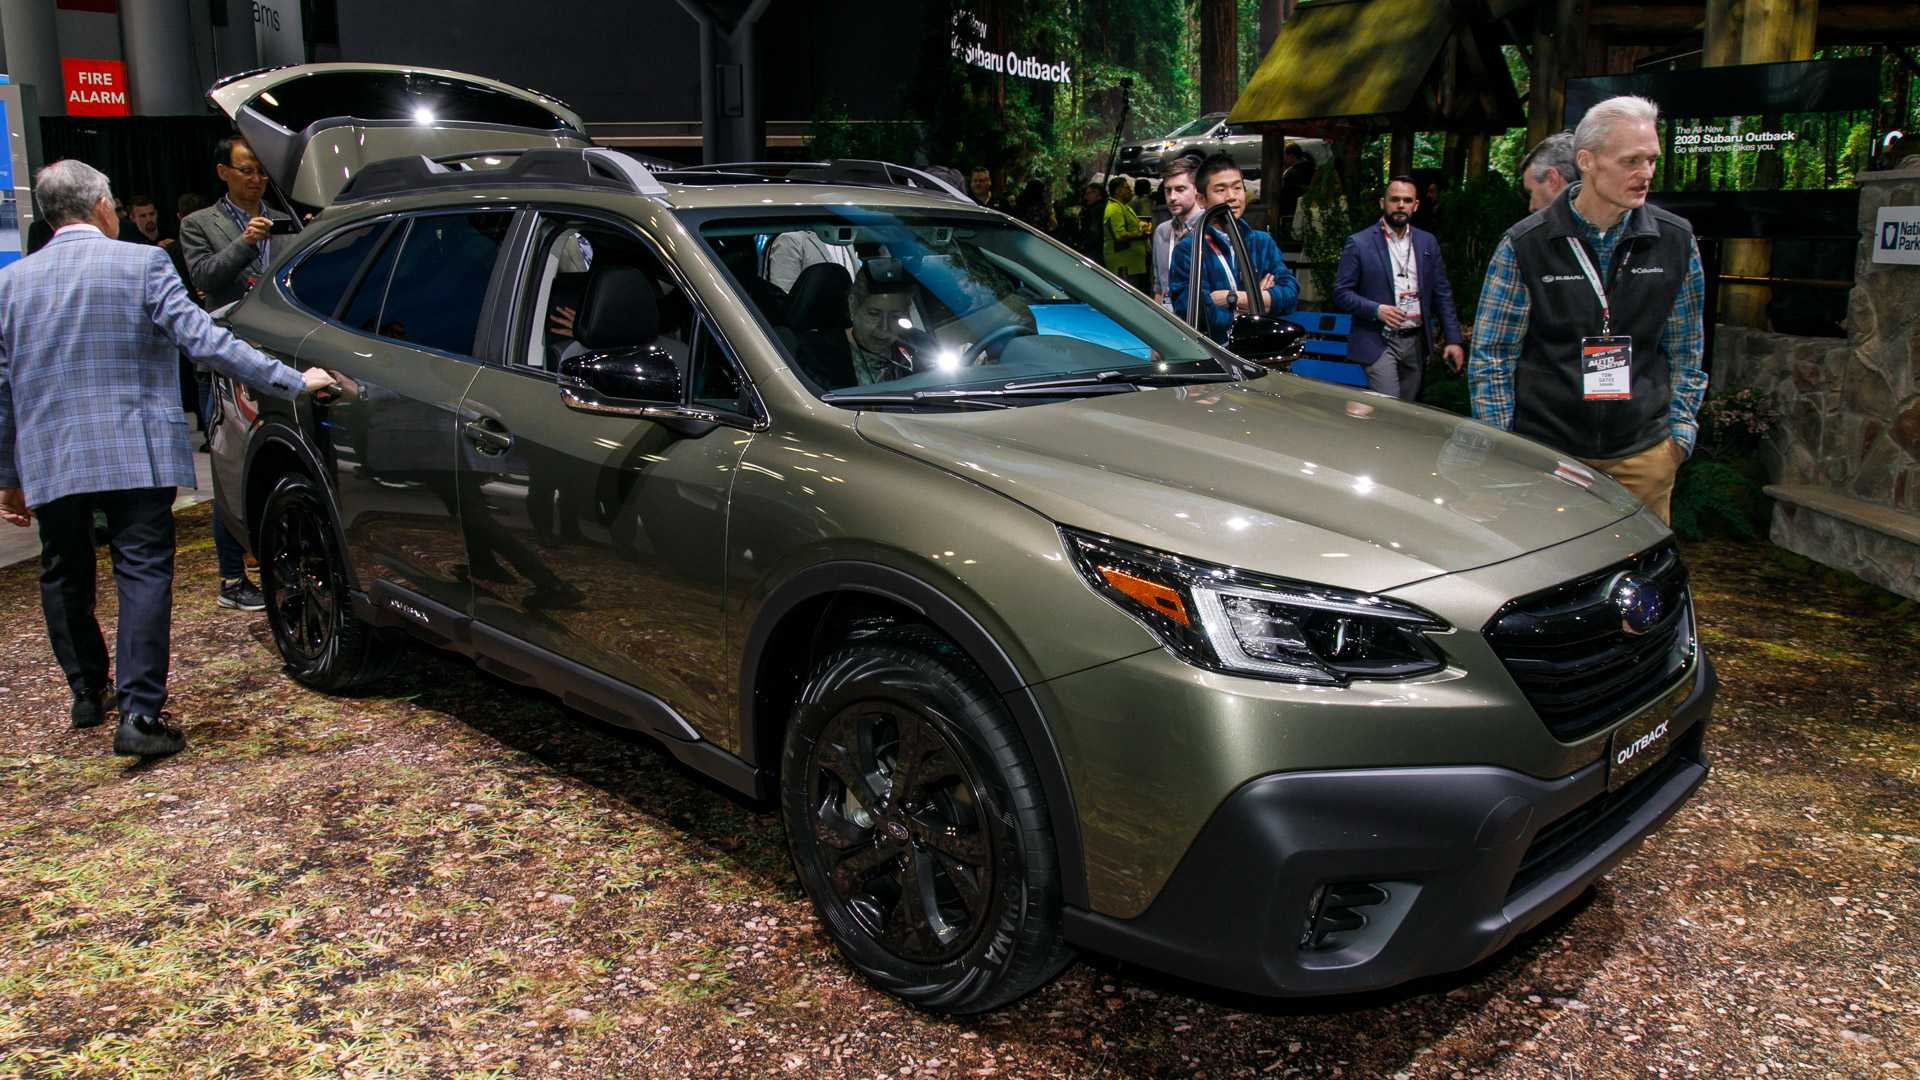 89 Gallery of Subaru Outback 2020 New York Exterior by Subaru Outback 2020 New York